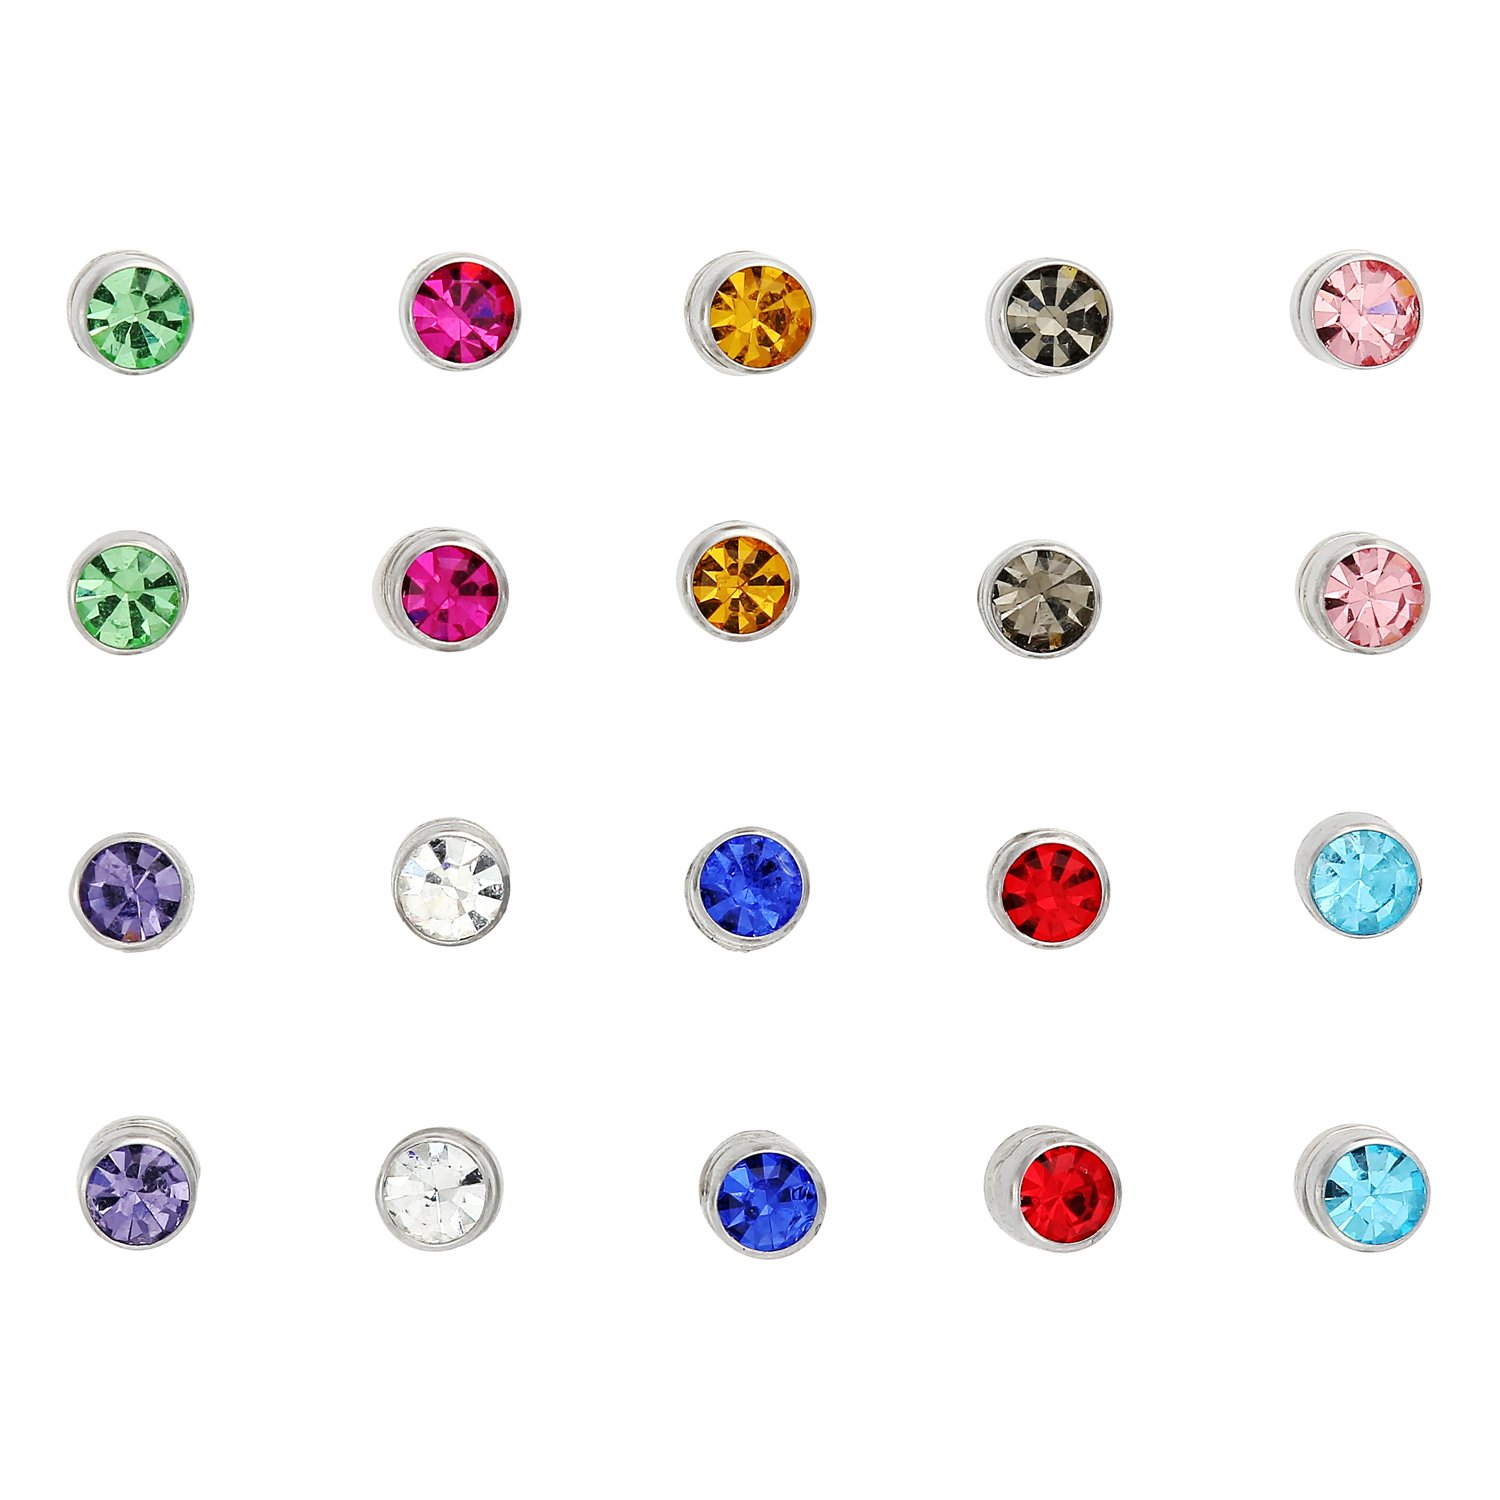 Amazon: Stainless Steel Magnetic Clip On 5mm Stud Earrings Unisex  Colored Crystal 10 Pair Set, By Regetta Jewelry: Jewelry